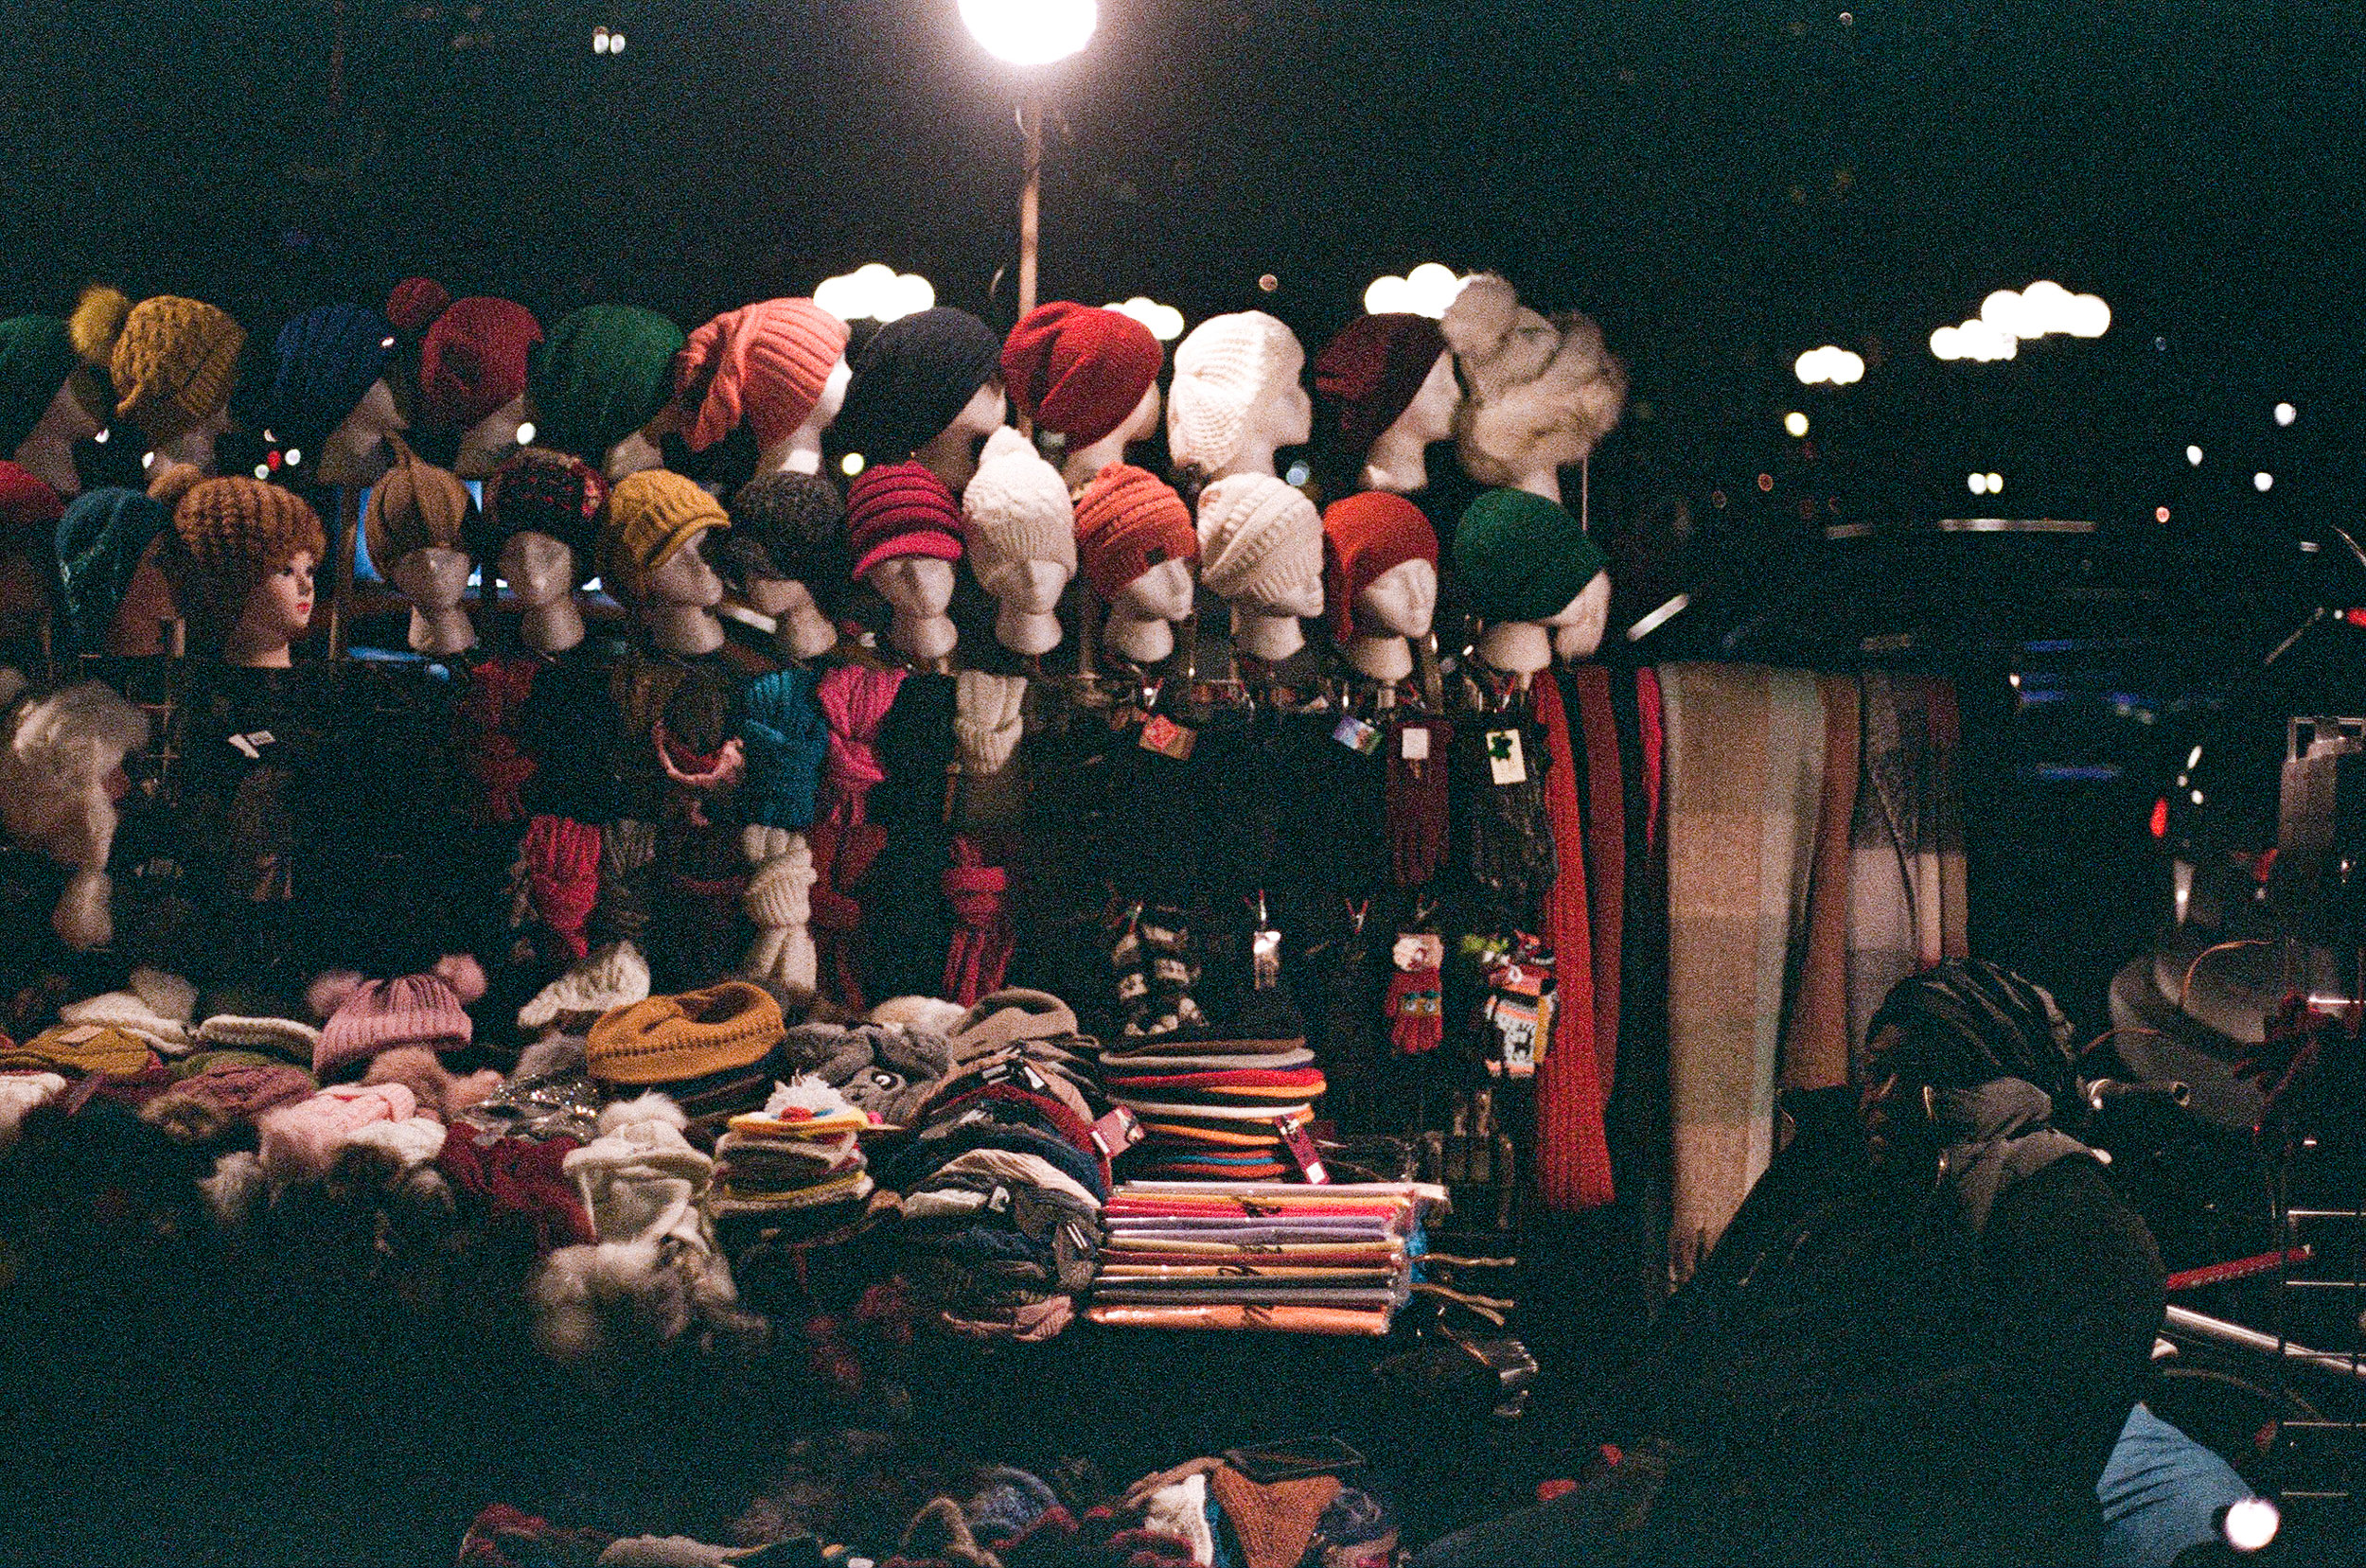 Hat Vendor at Night_Film Photography_NYC_Joe Curry Photography_2018.jpg